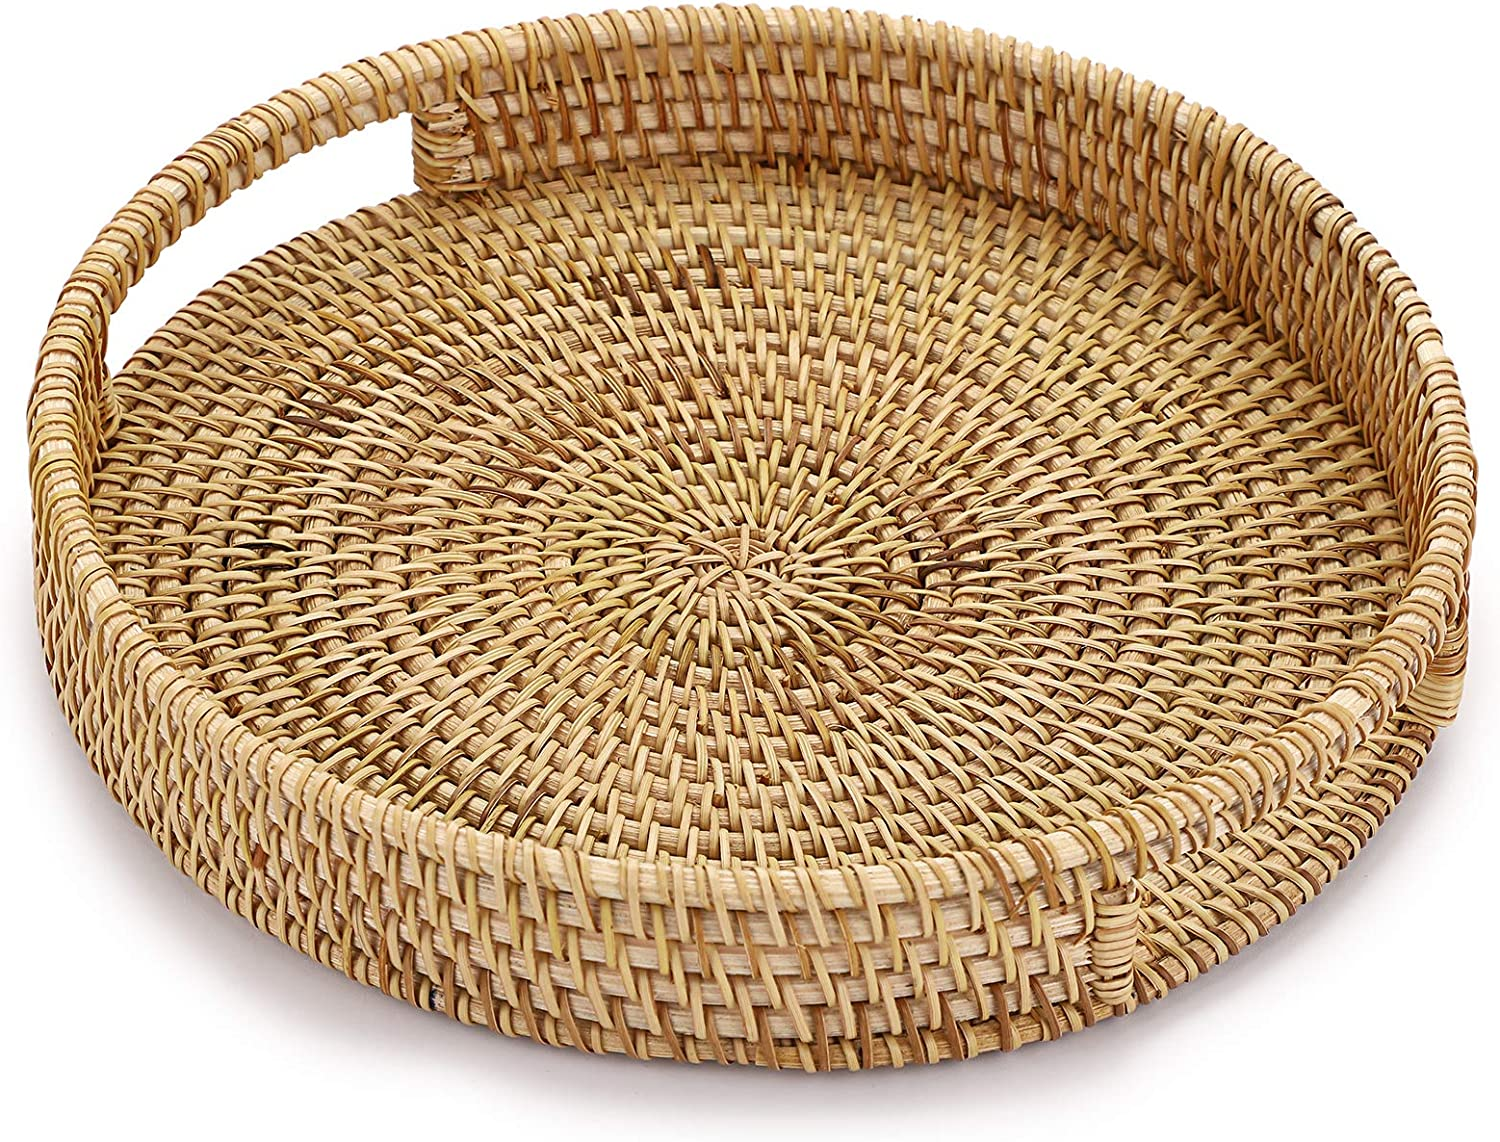 Rattan Storage Tray Round Basket with Handle Hand-Woven Rattan Tray Wicker